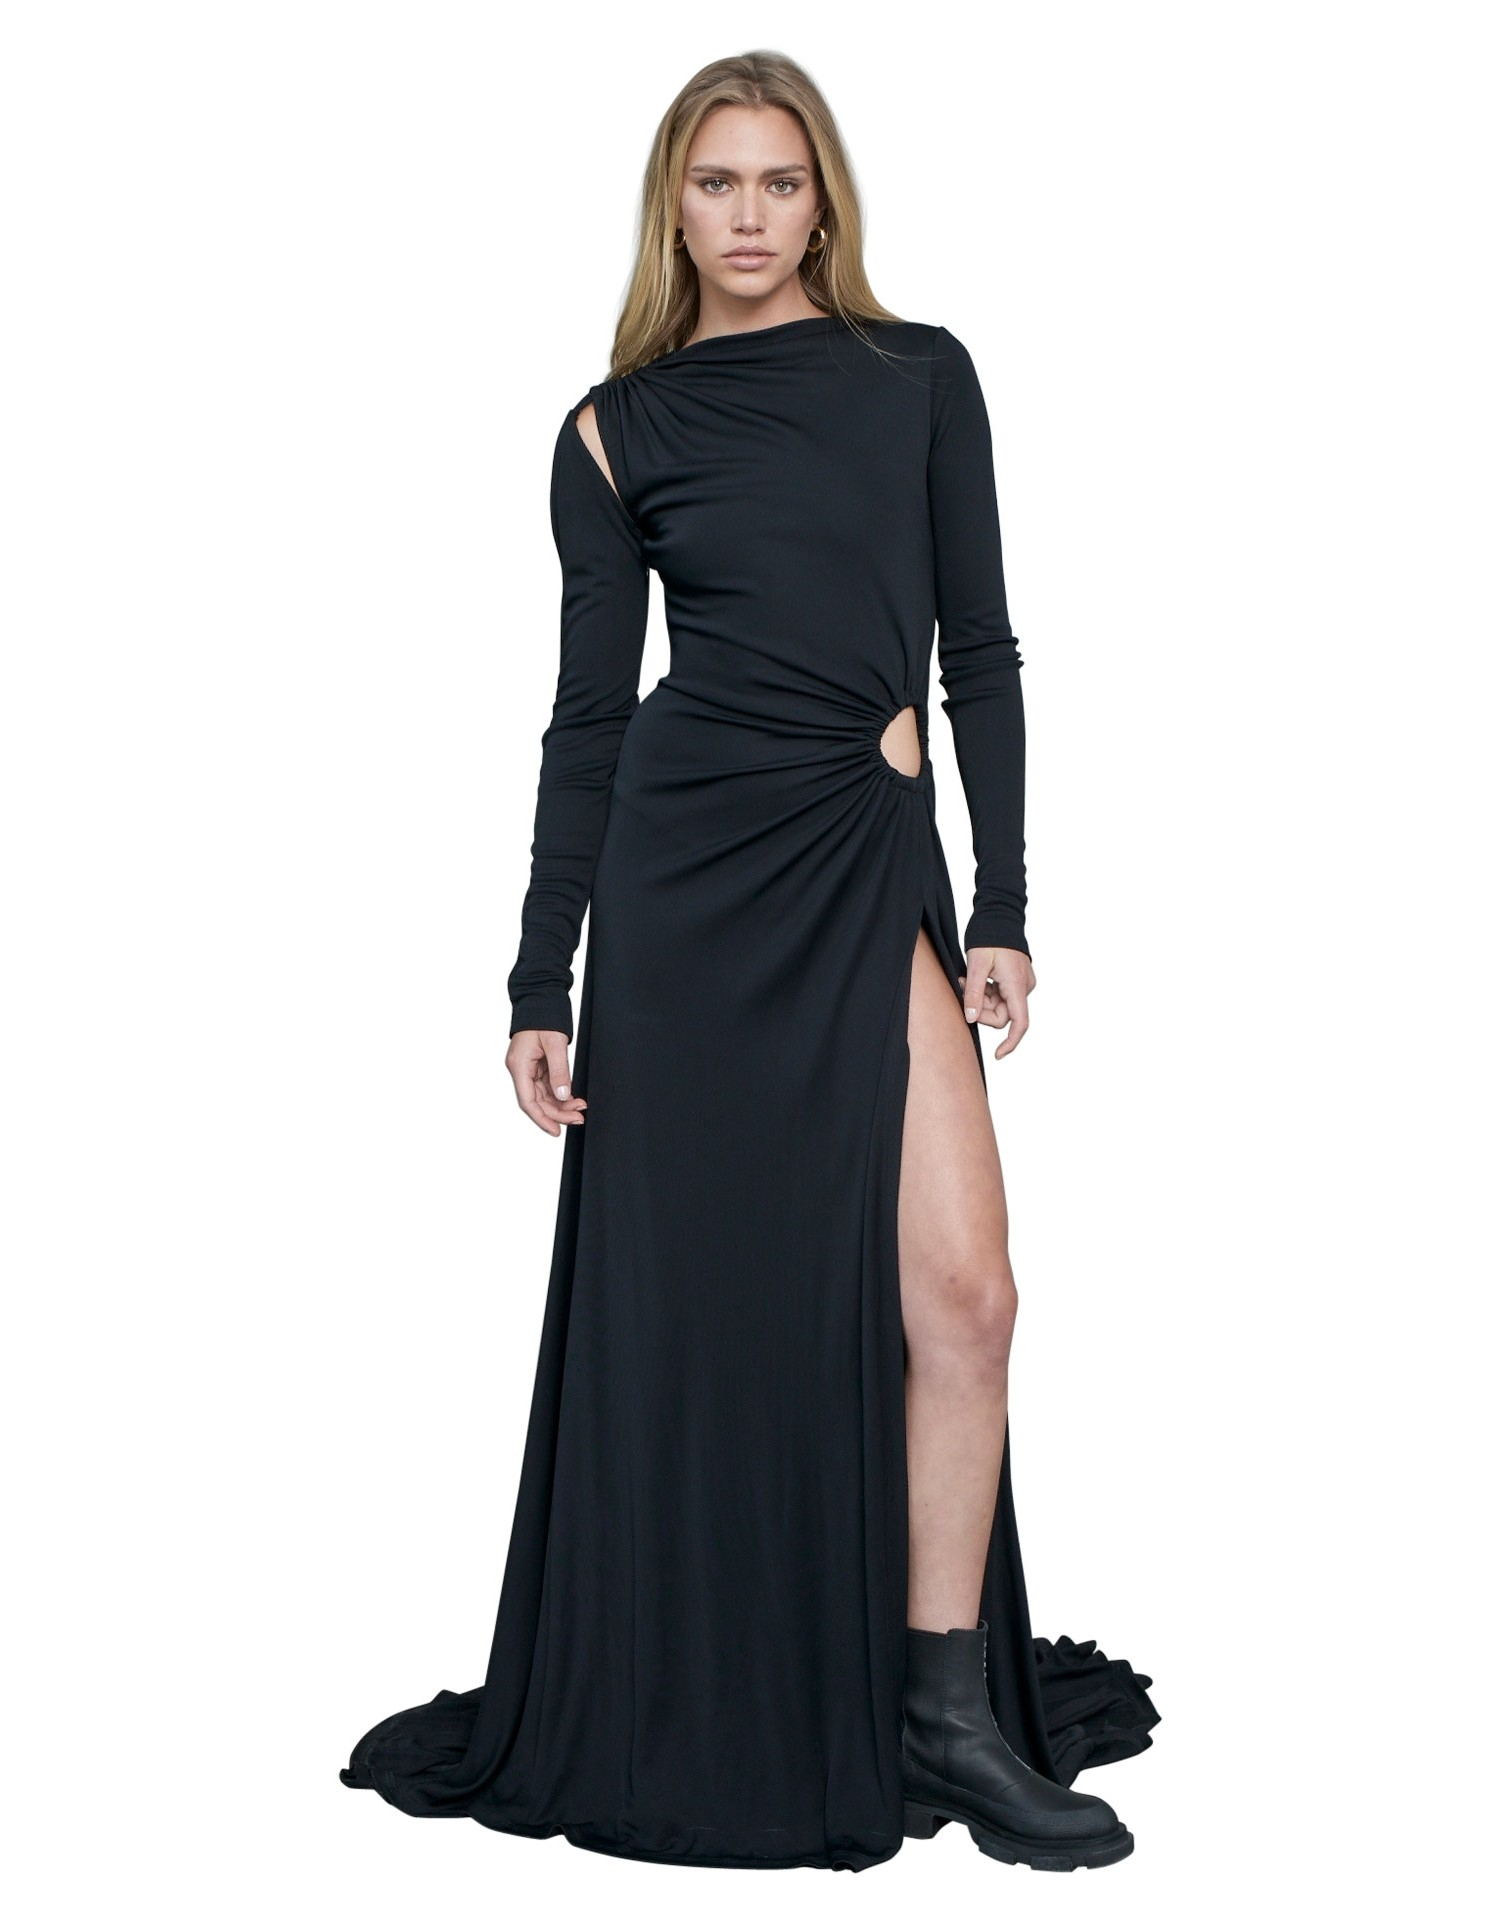 MONSE Vortex Long Sleeve Gown in Black on Model Full Front View